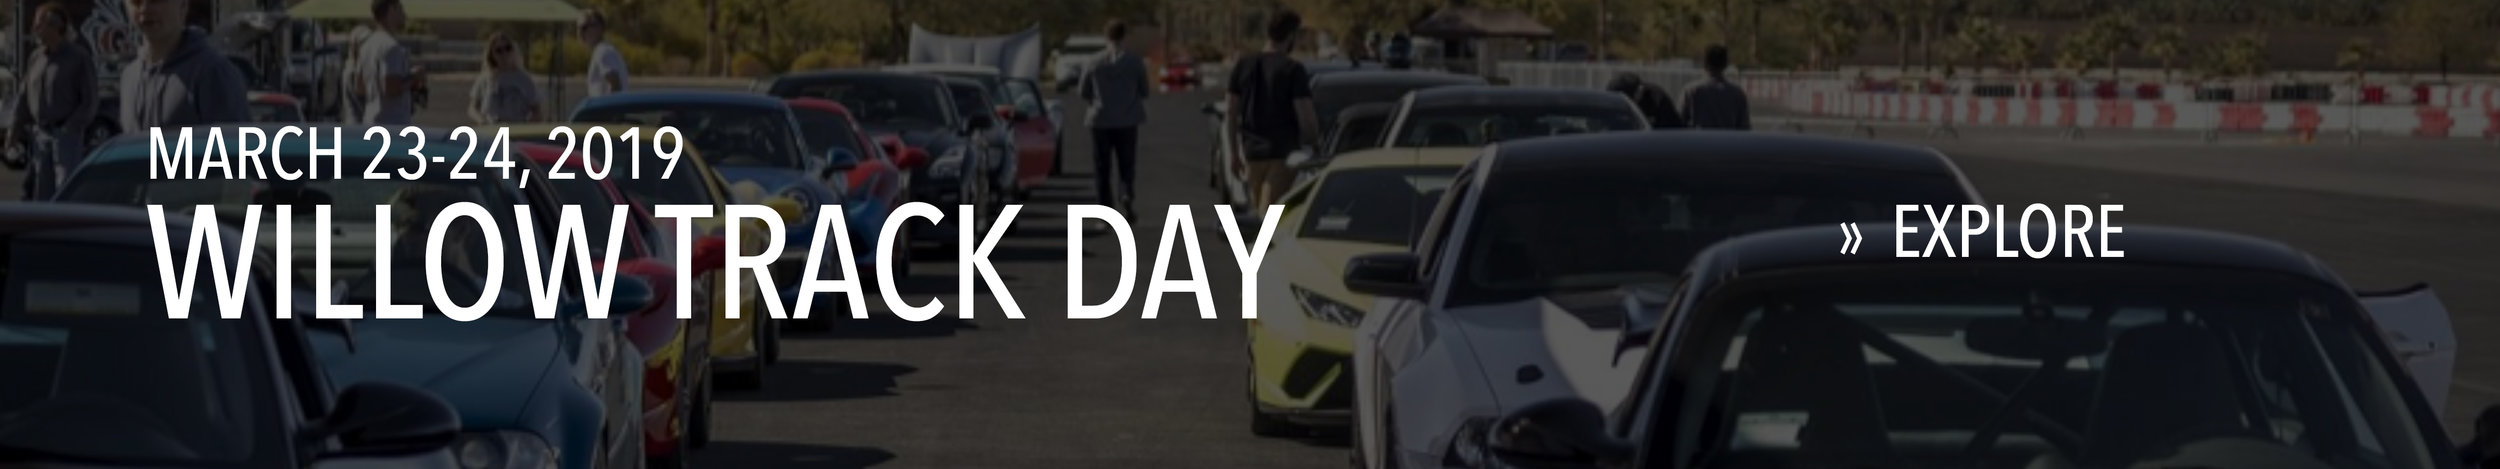 Willow Track Day on March 23-24, 2019.